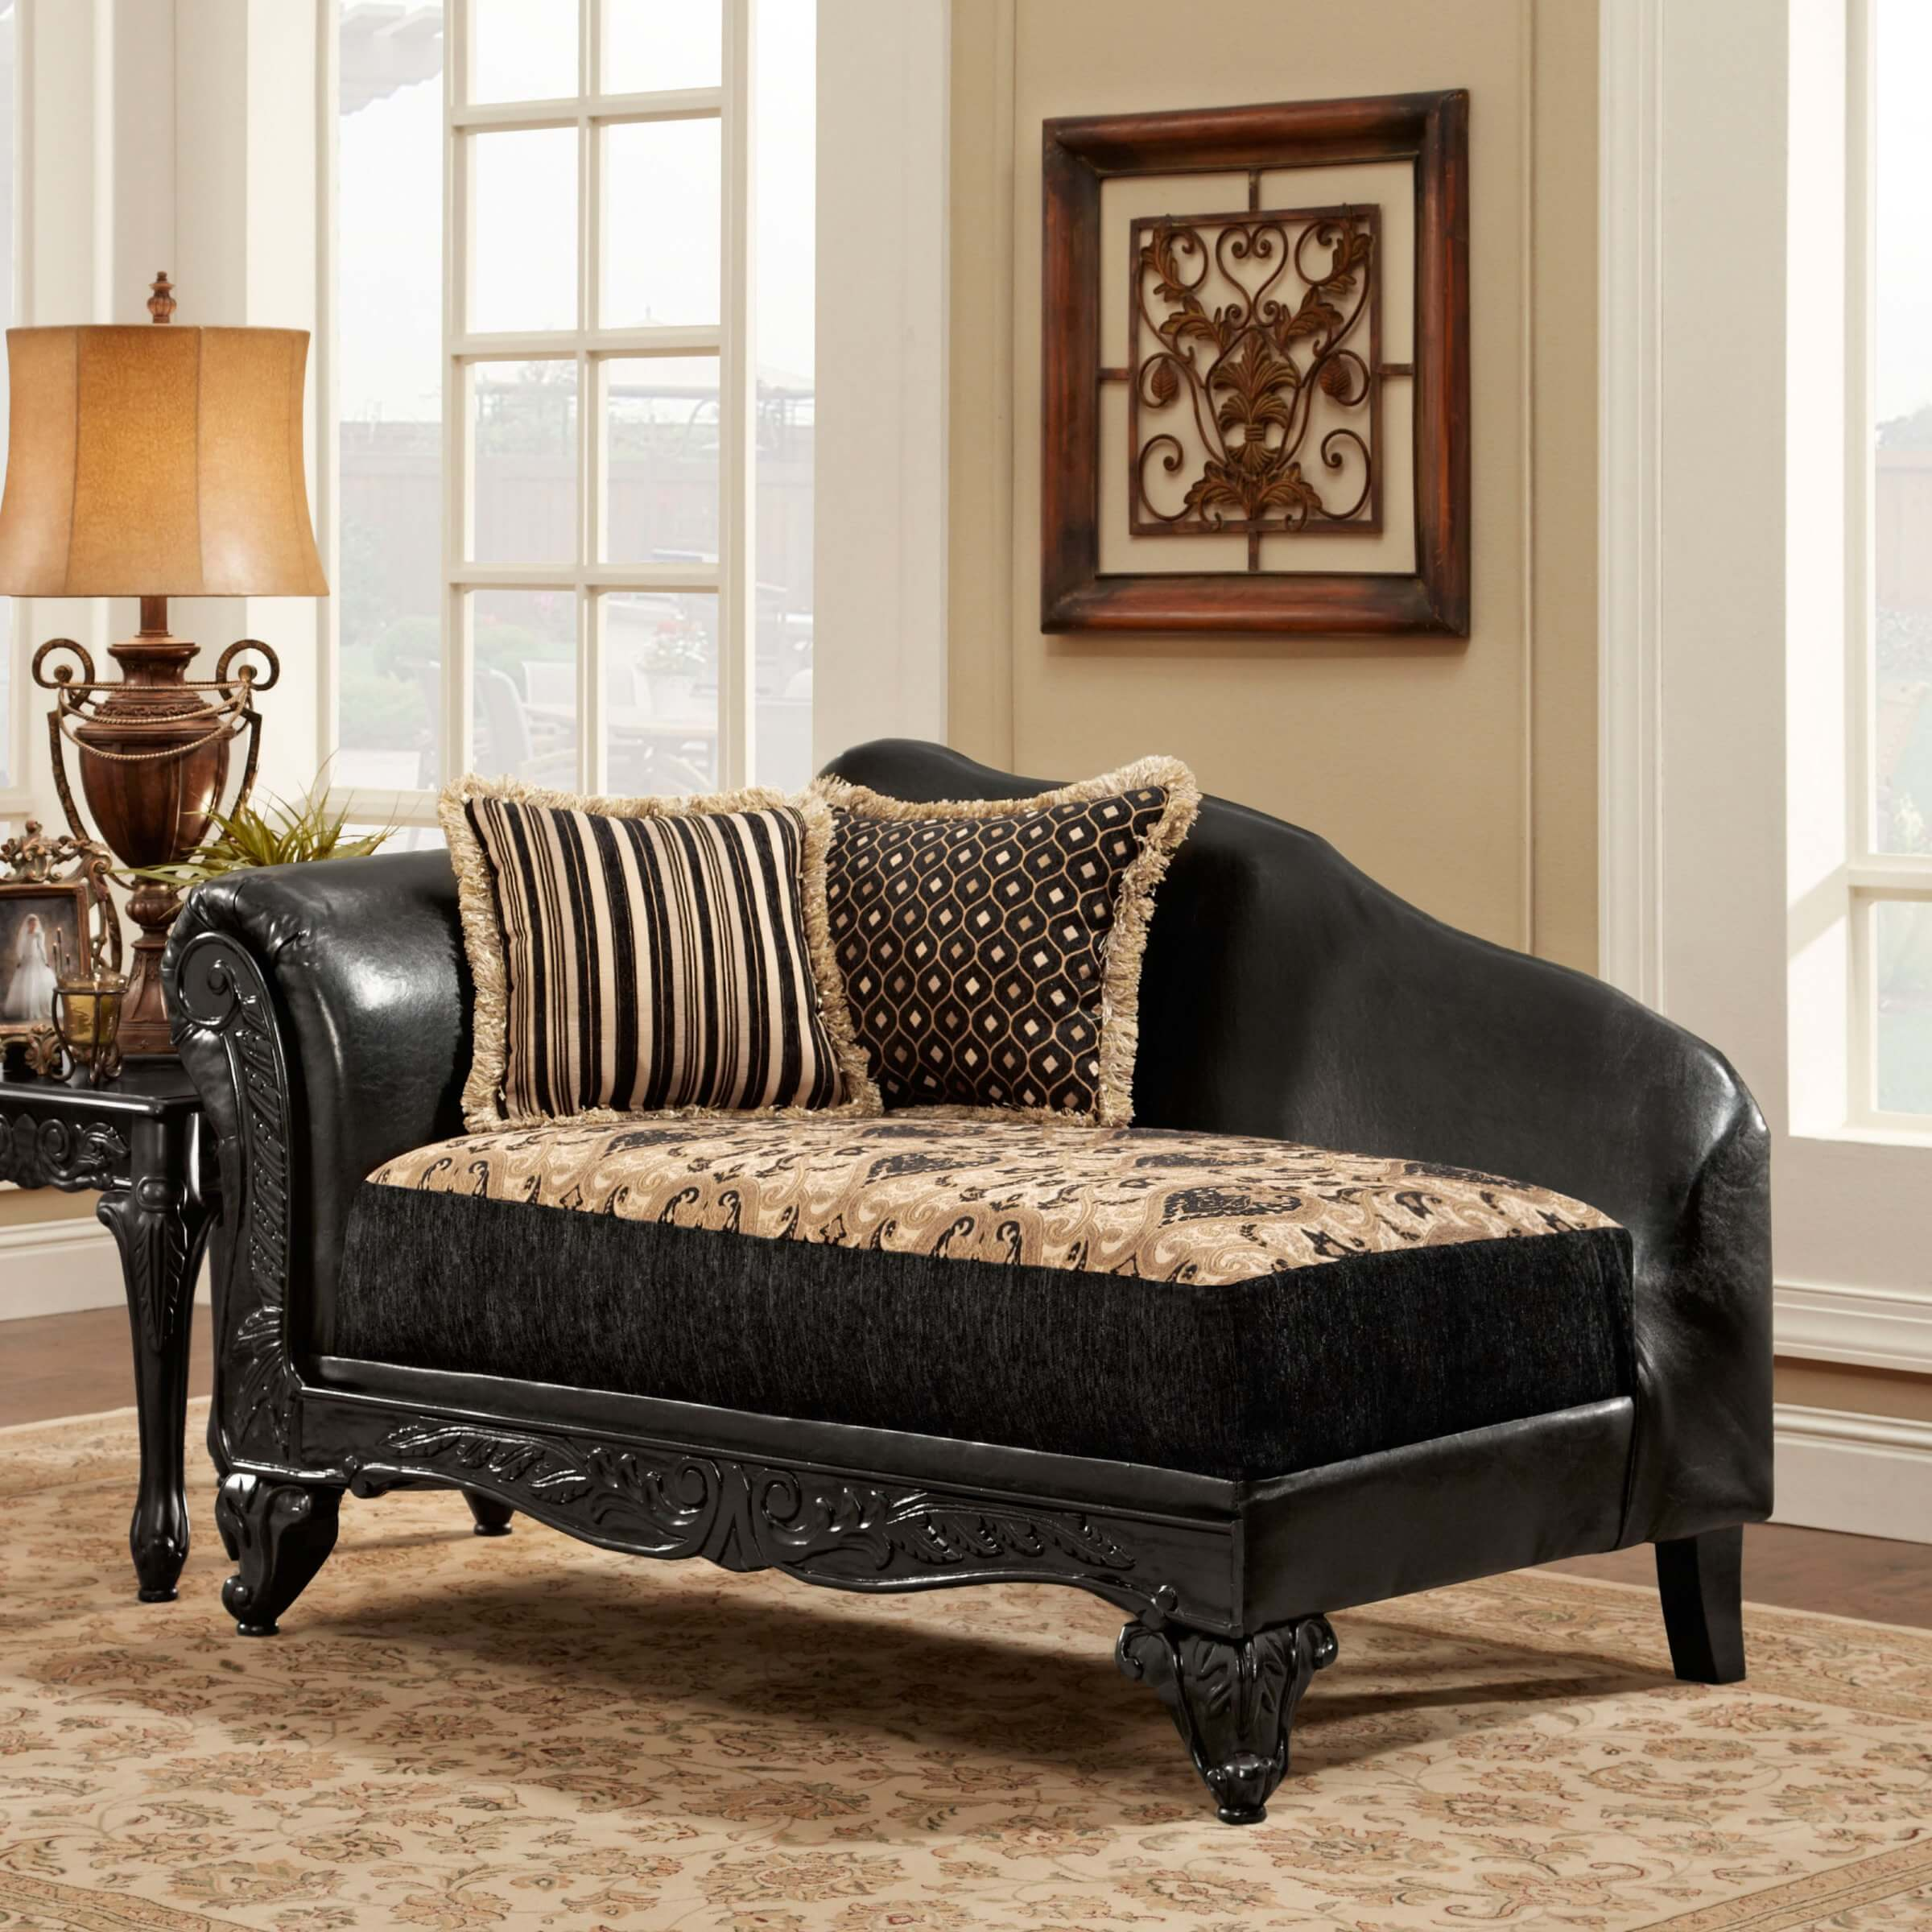 Leather Upholstered Lounge Top 20 Types Of Black Chaise Lounges Buying Guide